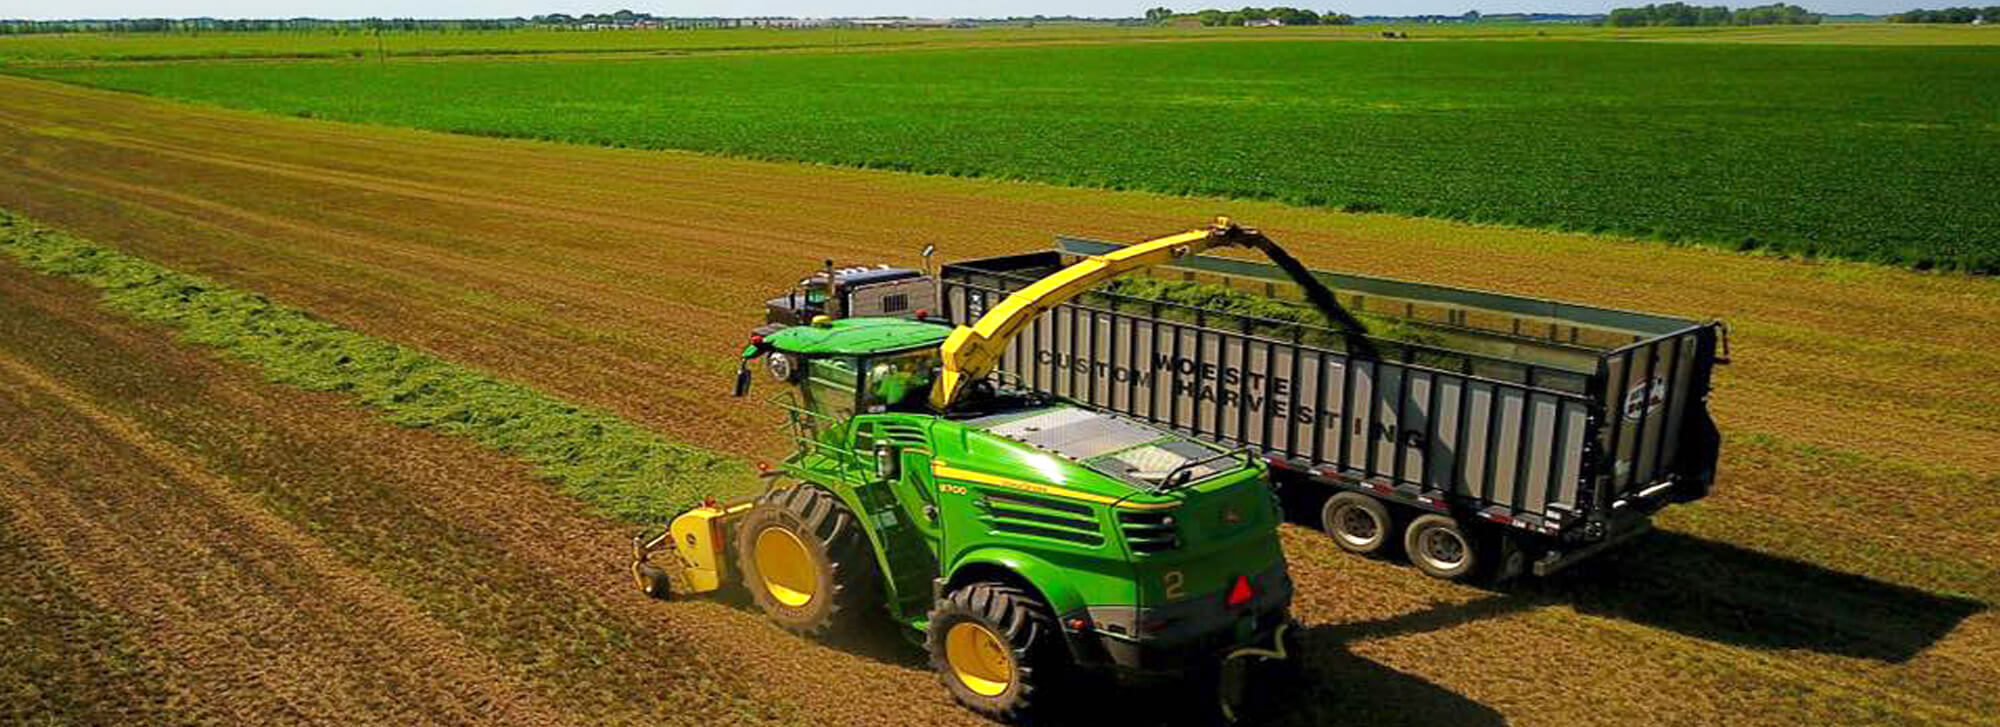 Modern John Deere chopper in hay field